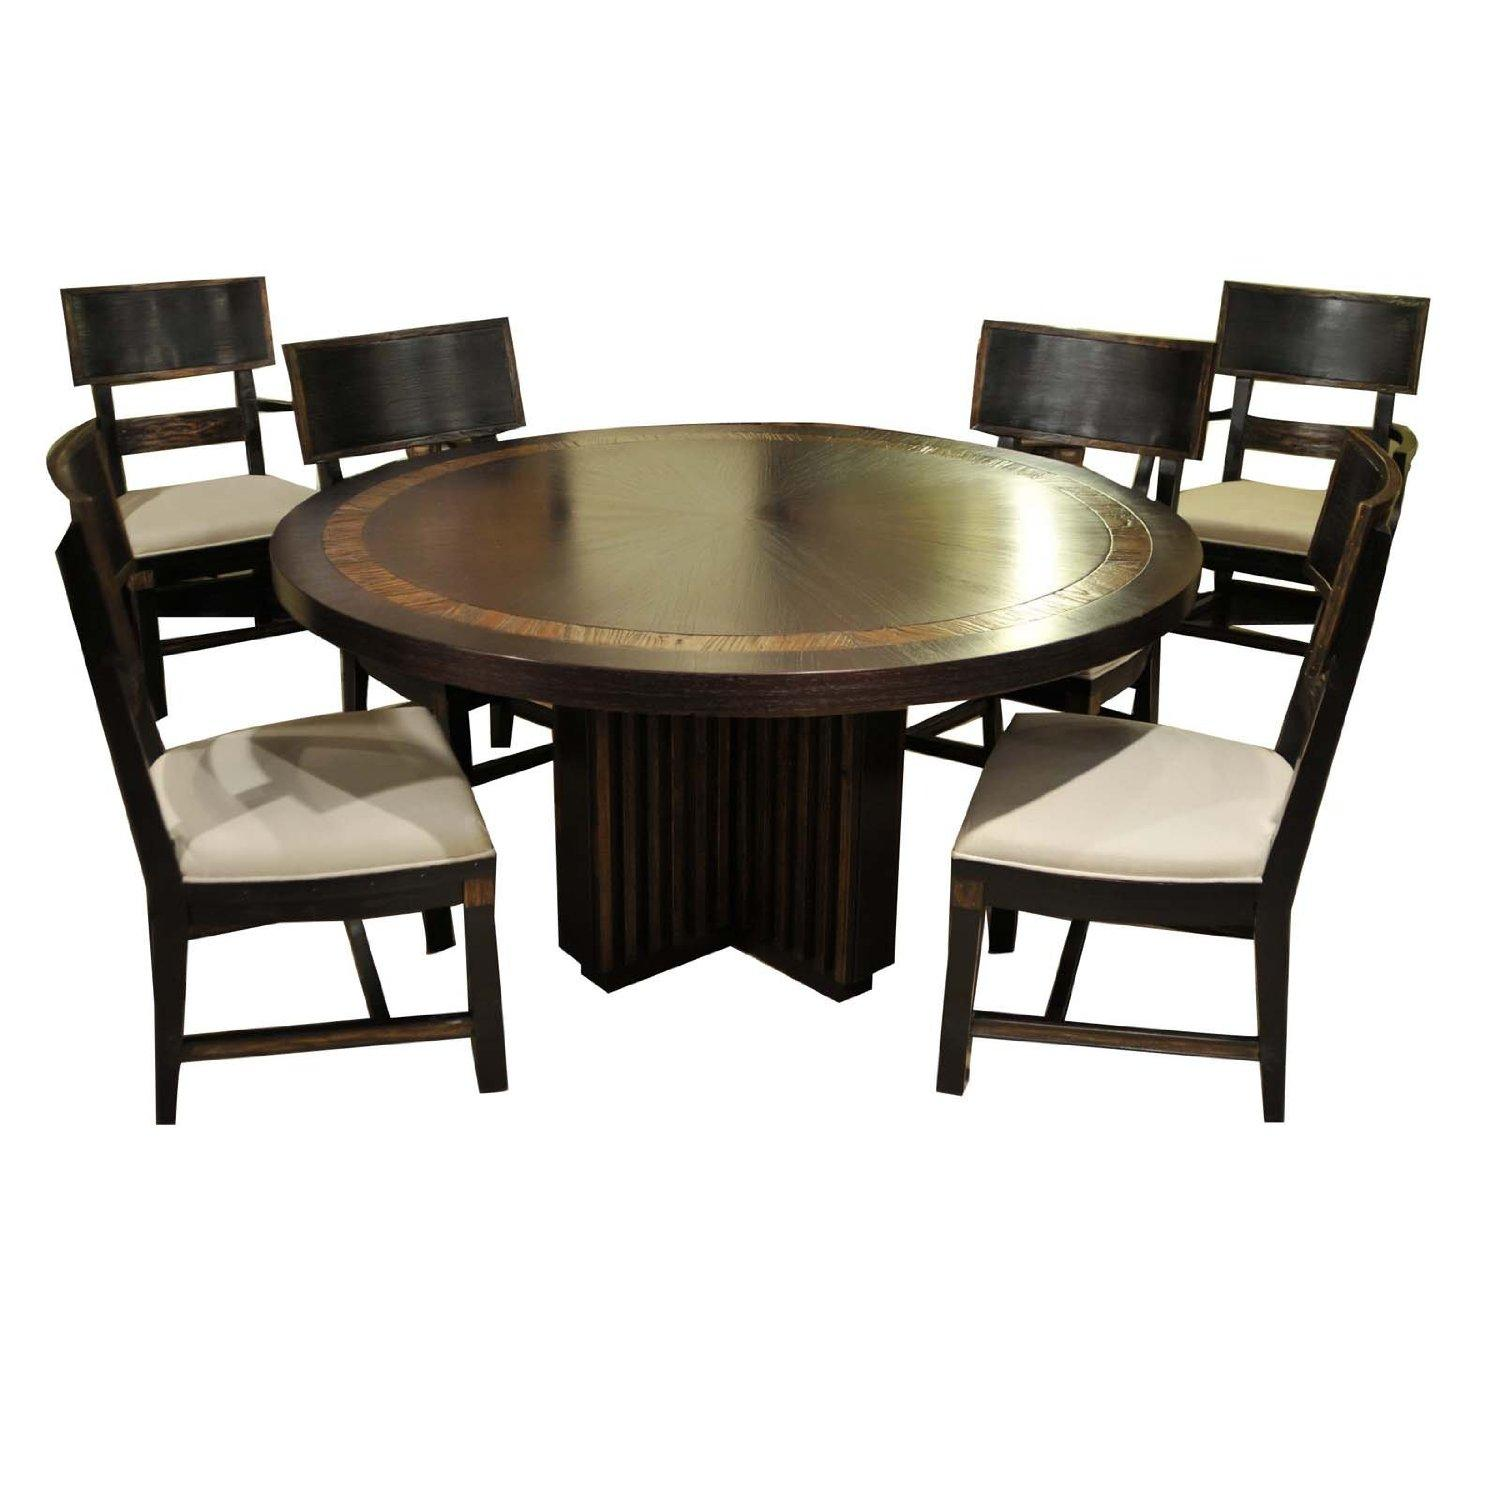 Round Table And Chairs For 6: Transitional Round Dining Table & 6 Chairs